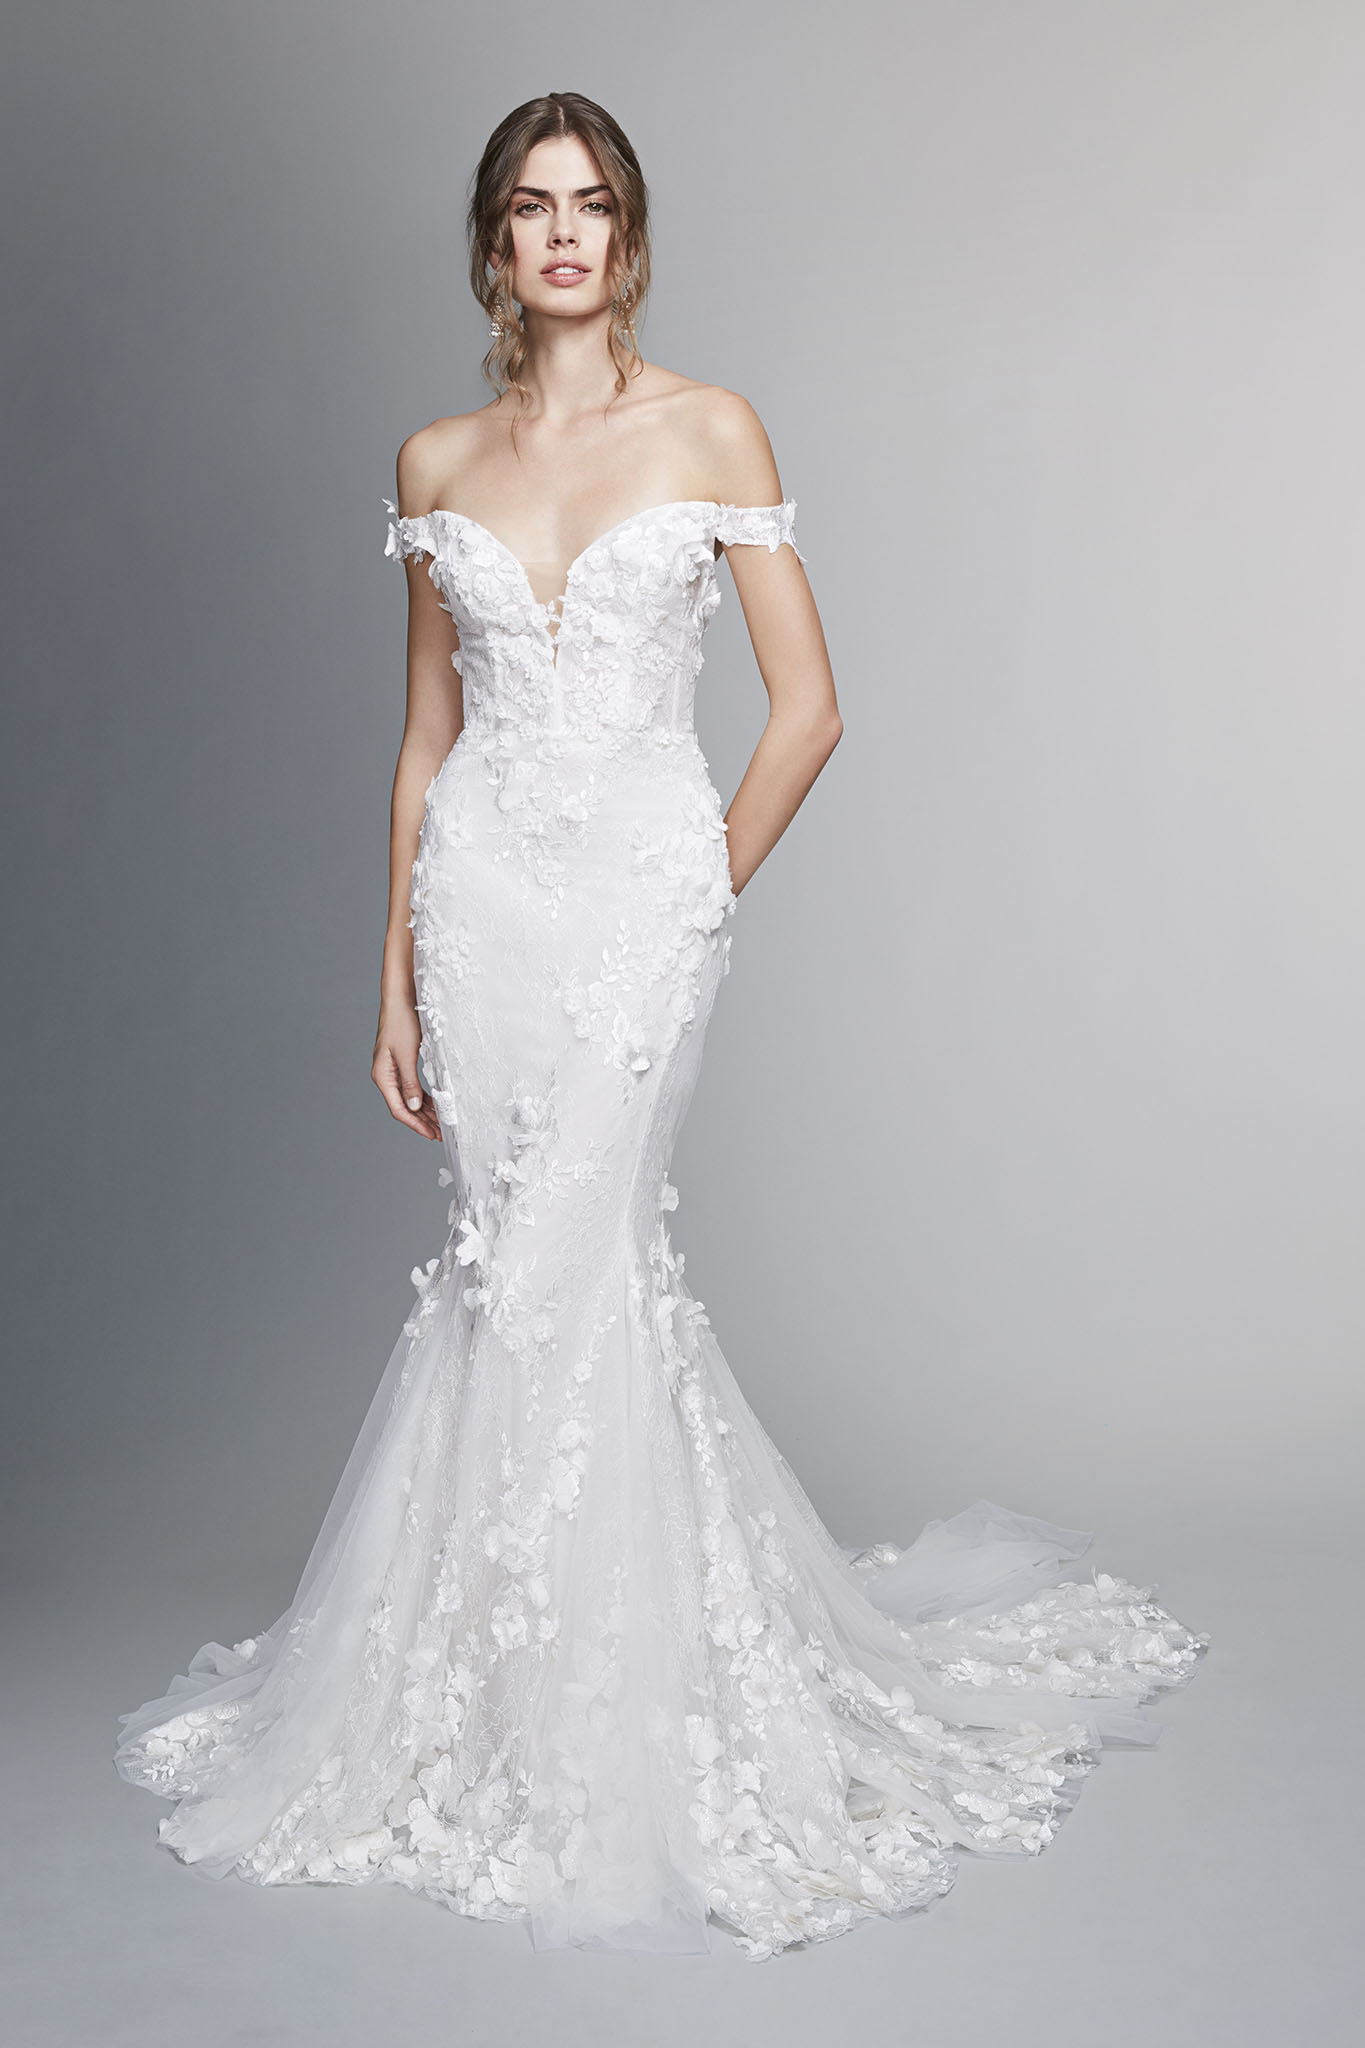 Marchesa Notte Bridal Fall 2021